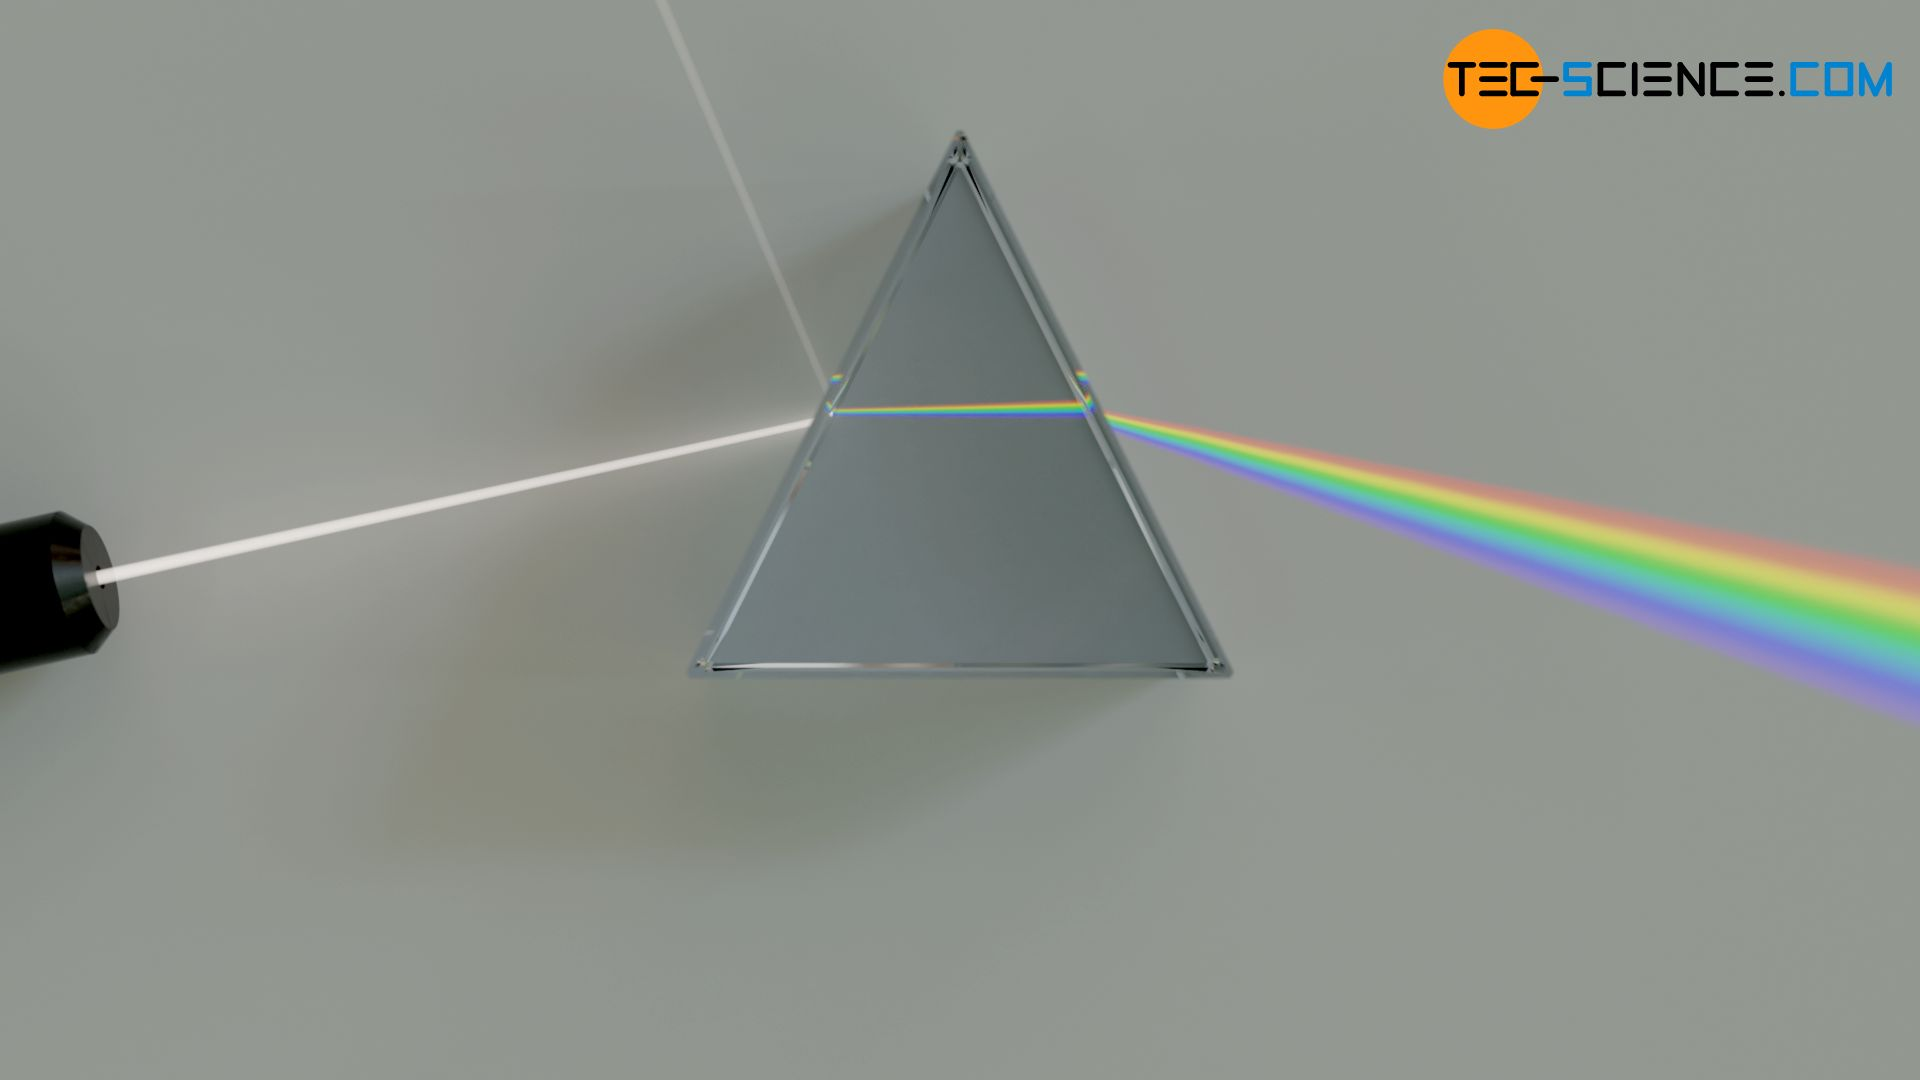 Light refraction in a prism (dispersion)